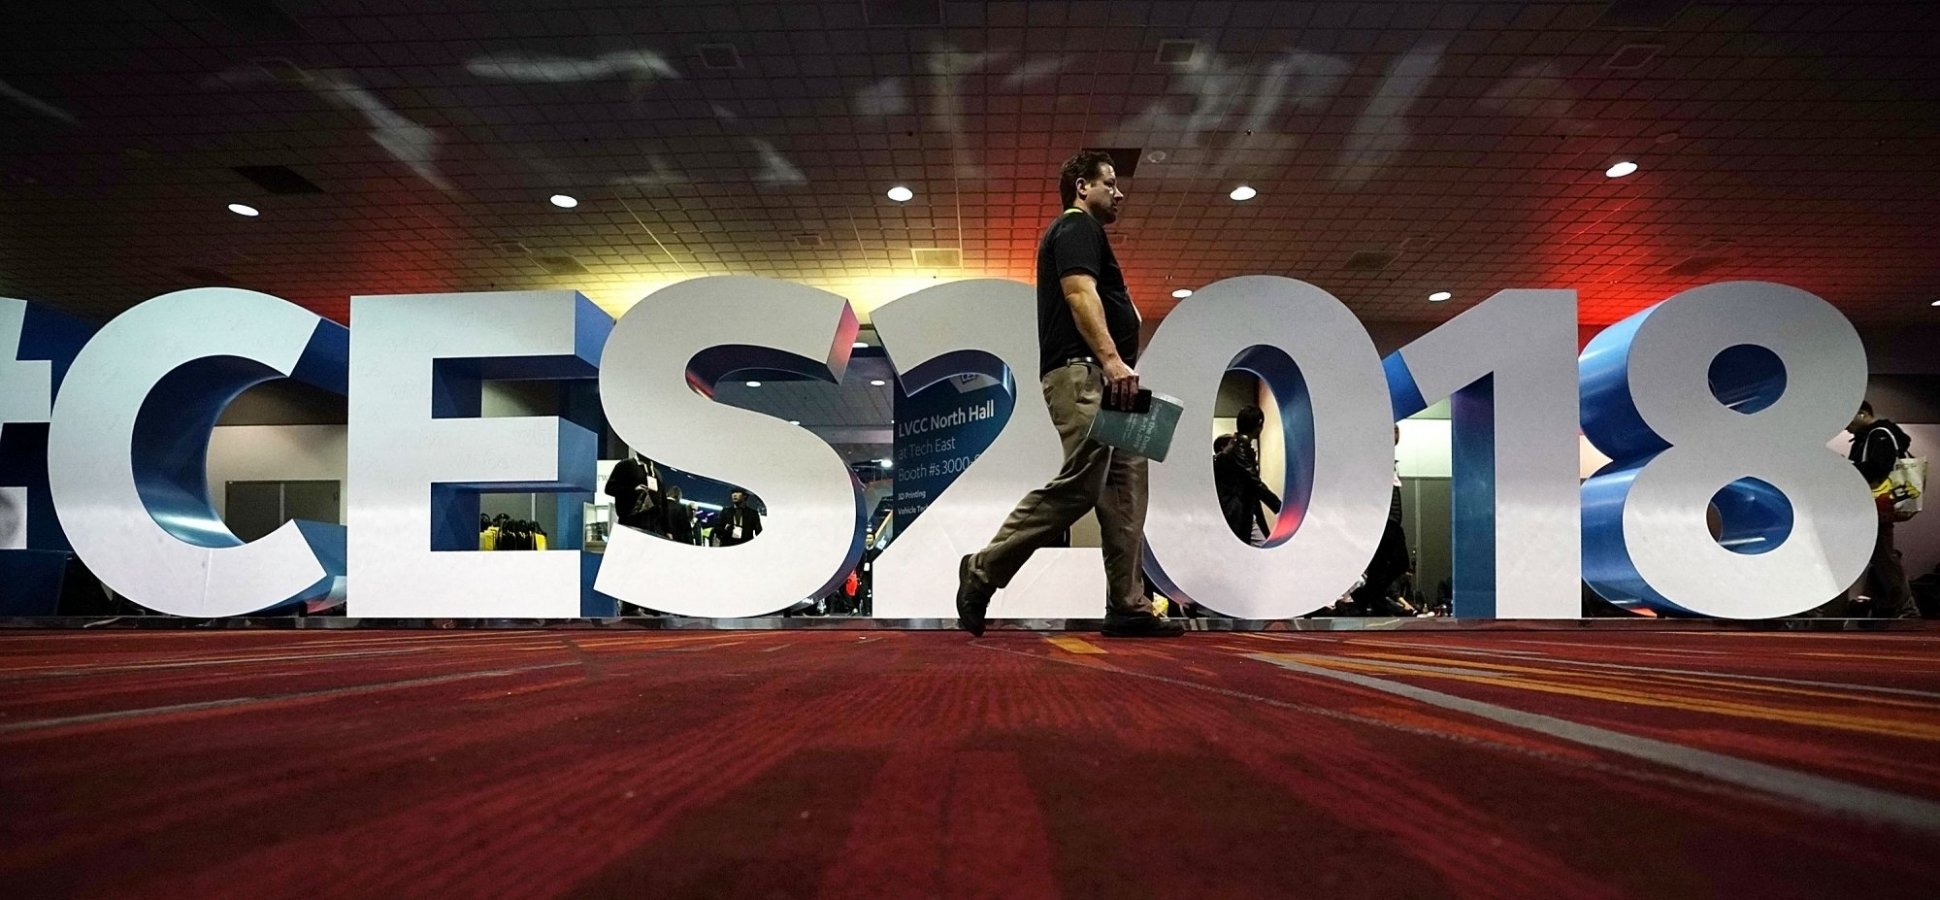 The Future of Advertising May Depend on These 3 CES Trends